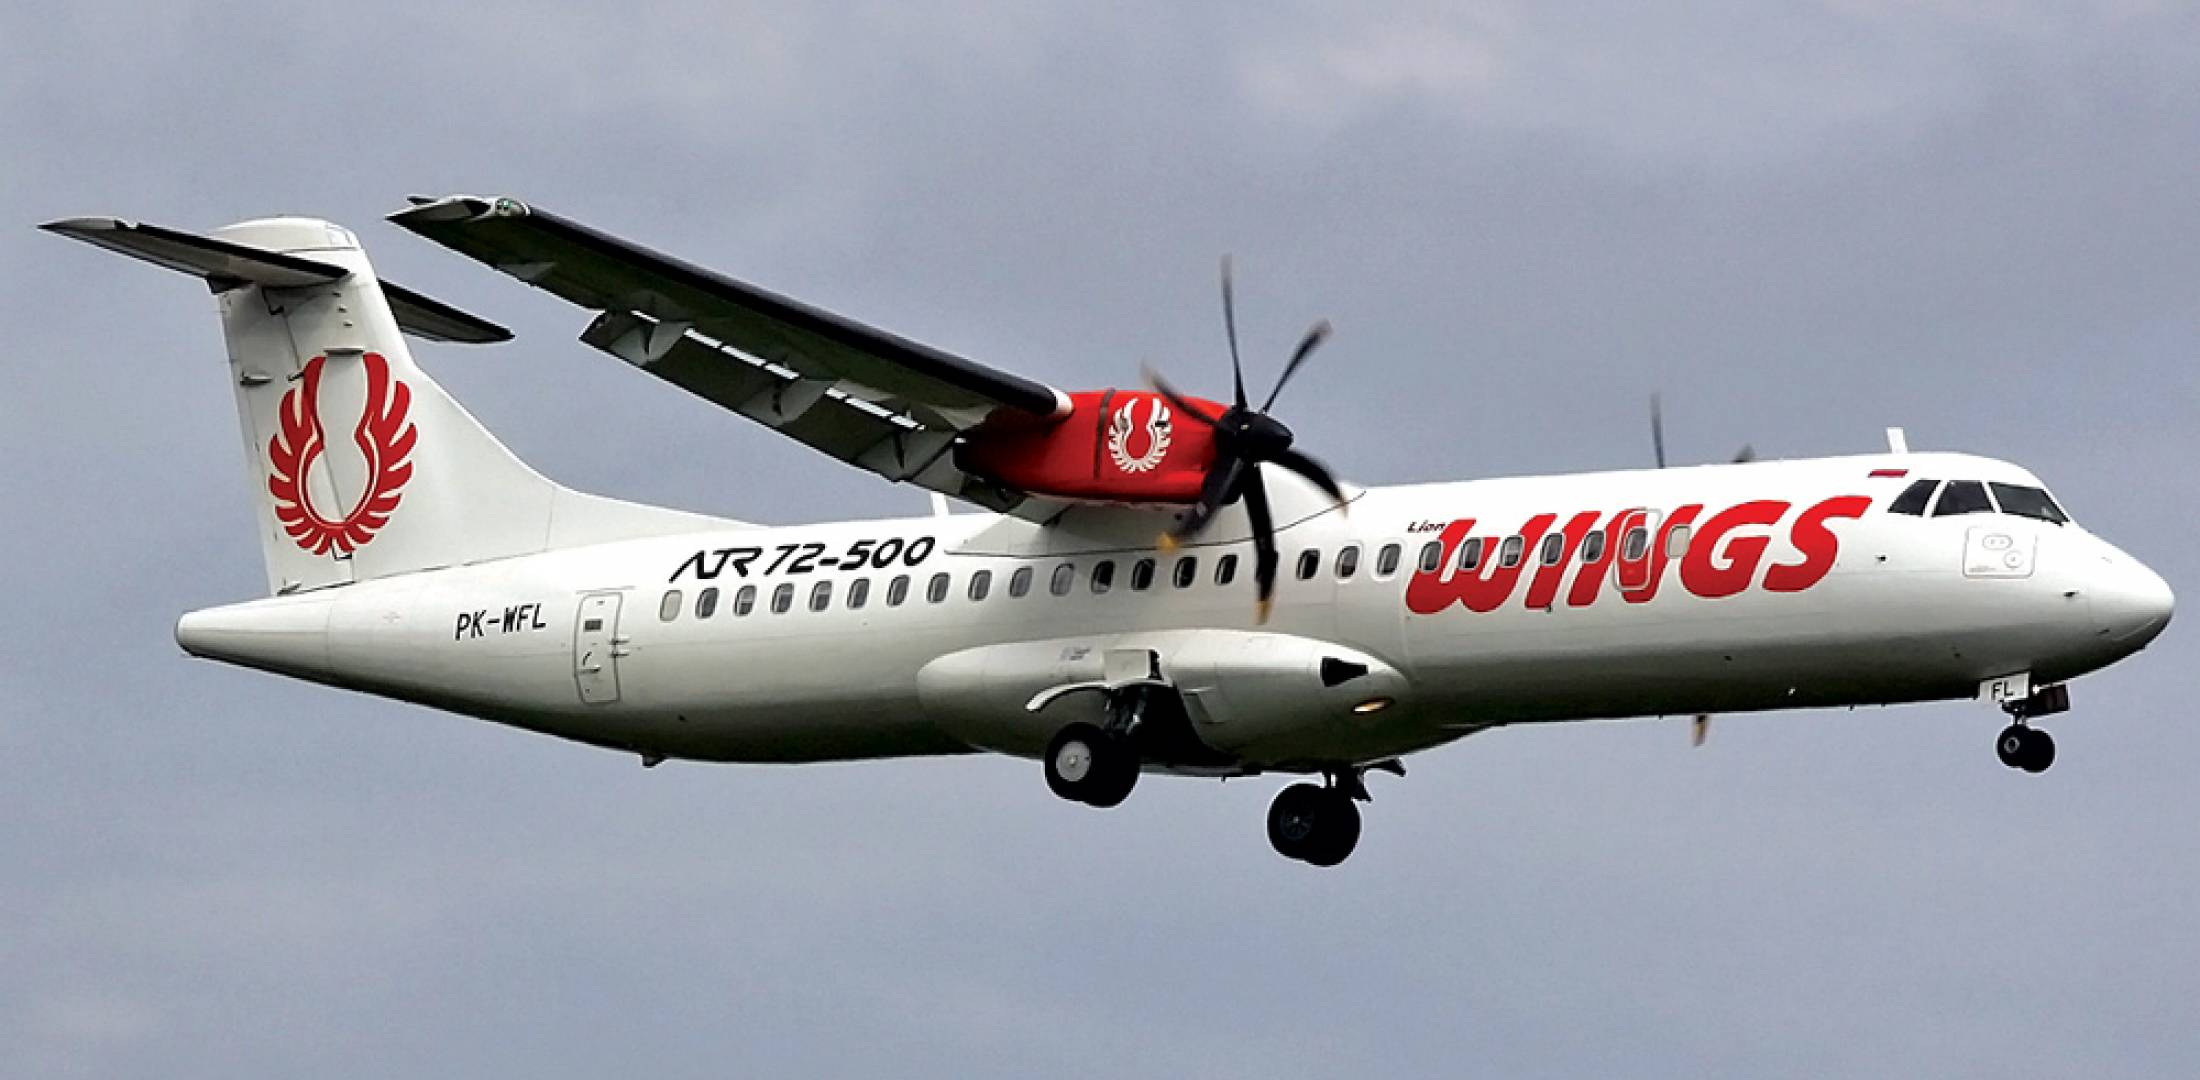 Wings Air has plans to apply for a permit to operate to Subang beginning in late 2015 or 2016.